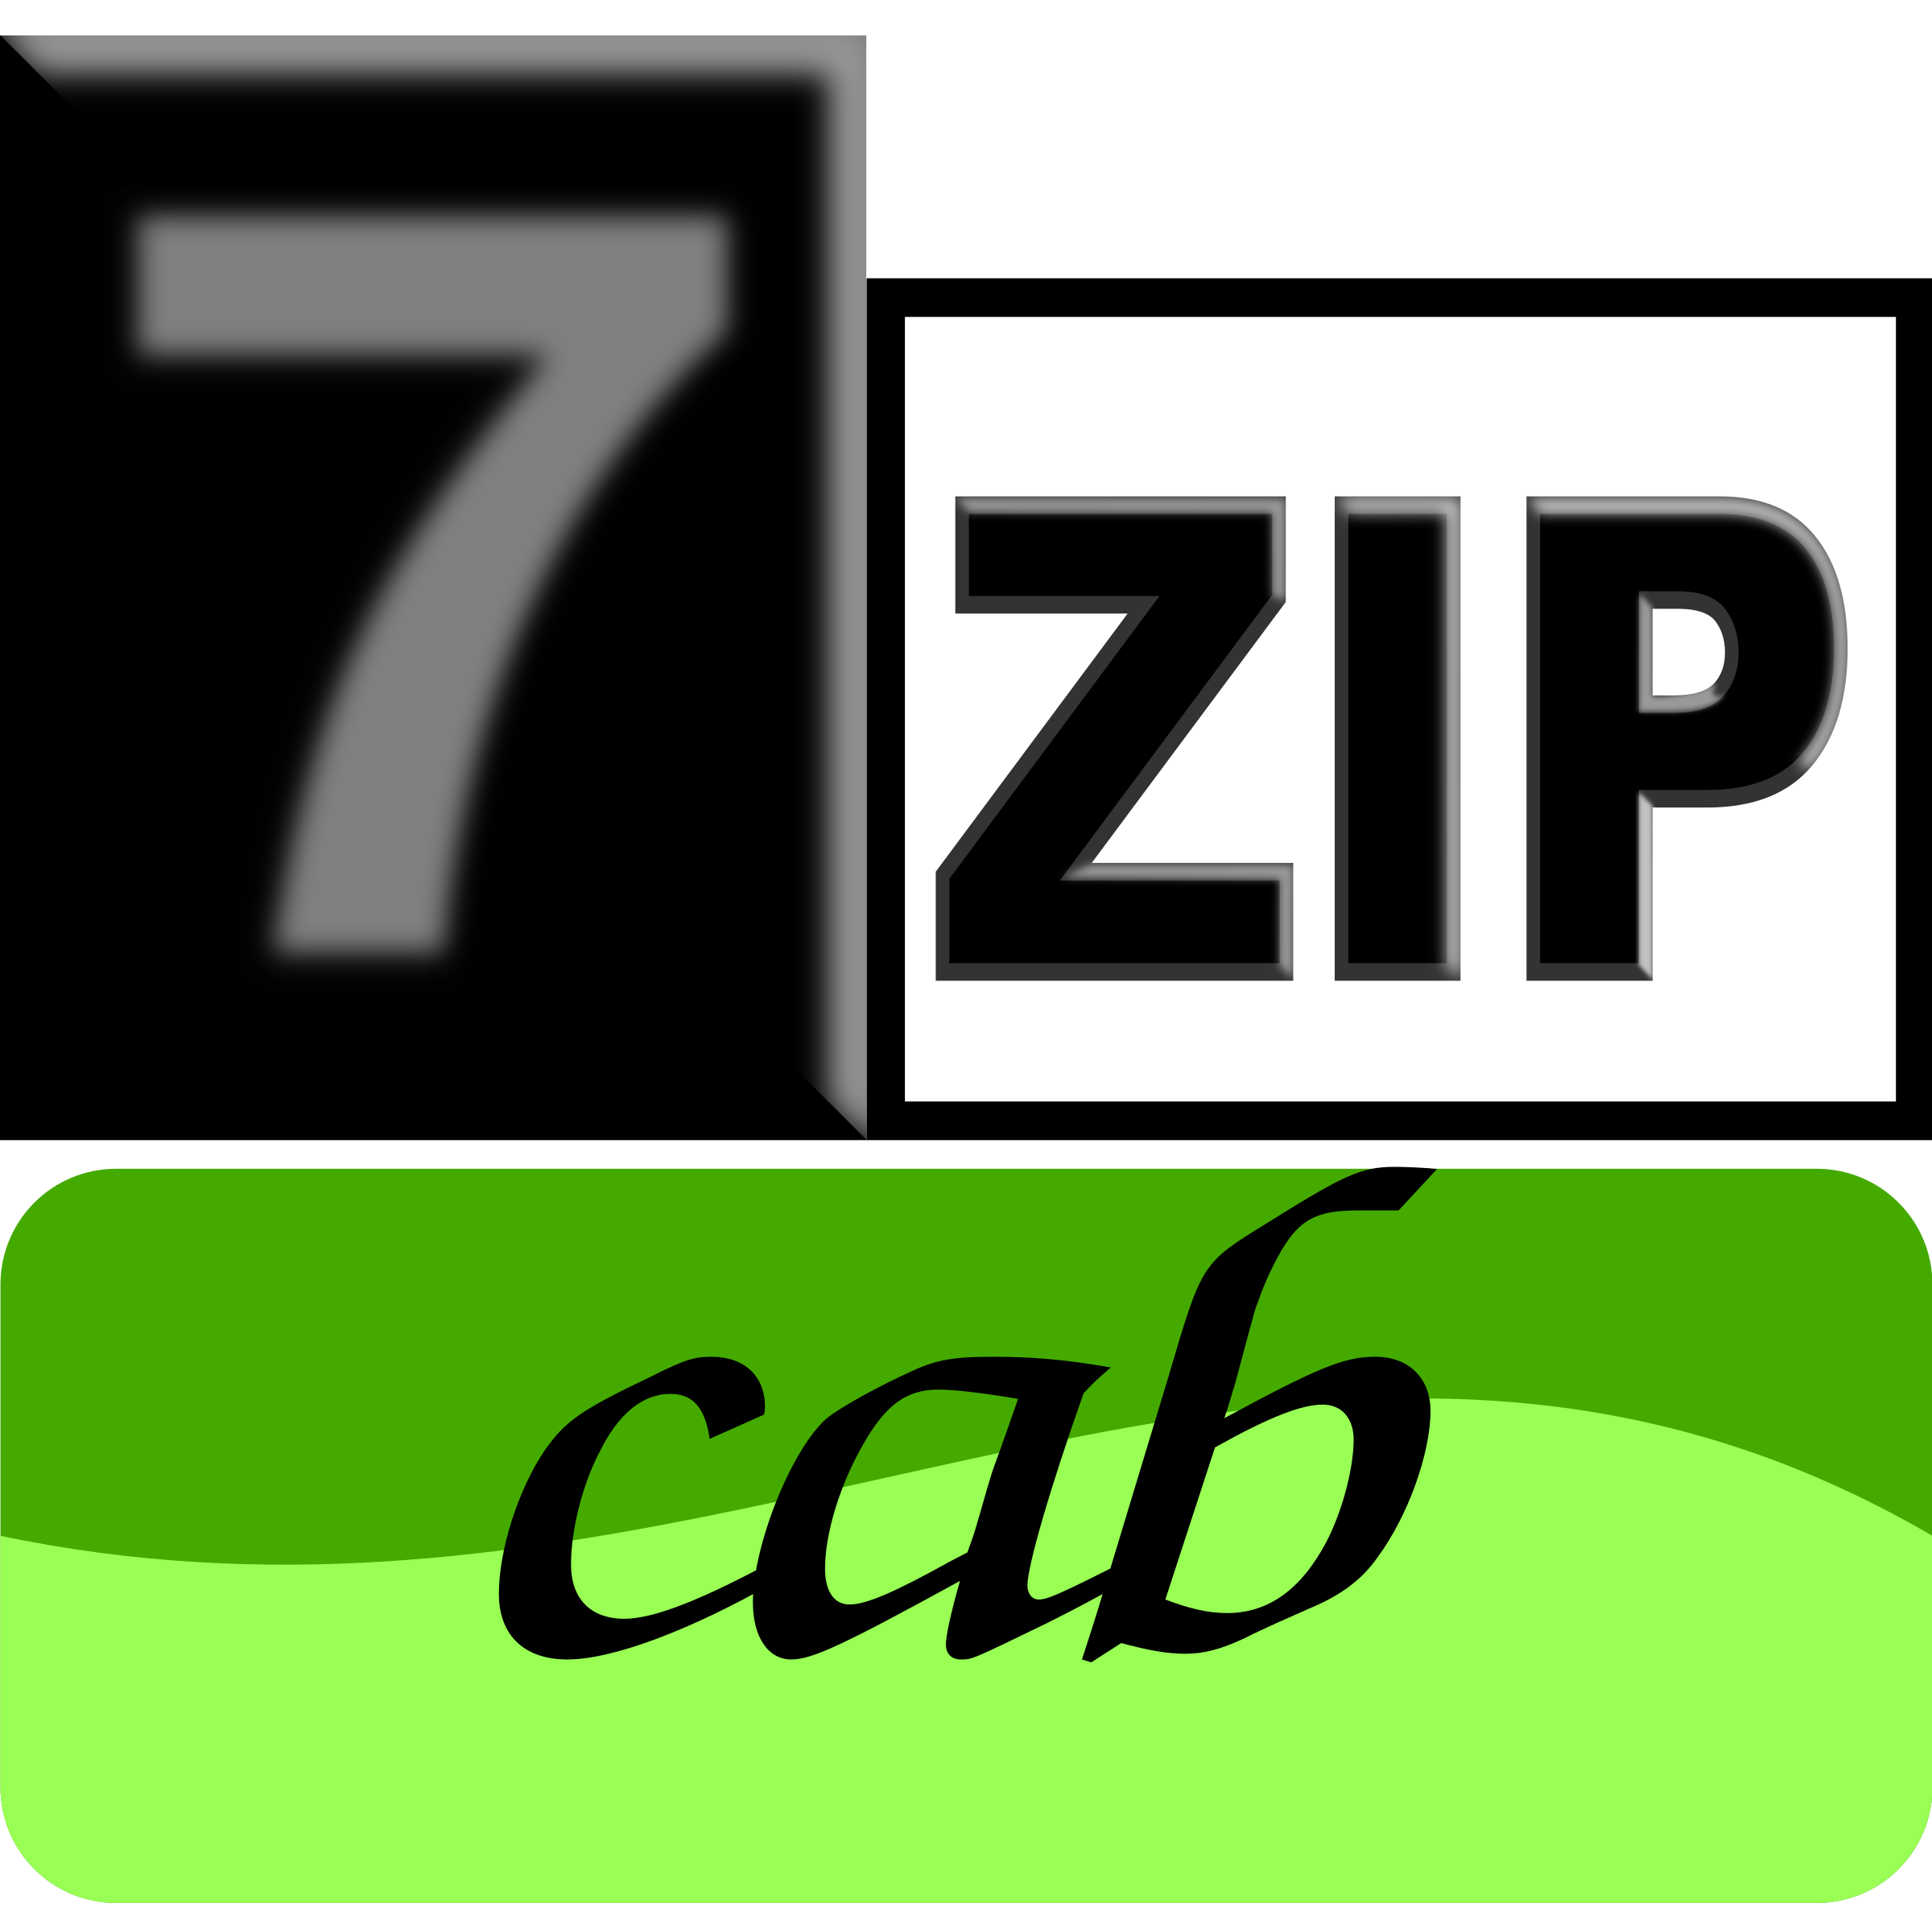 7zipClassic-cab by kg